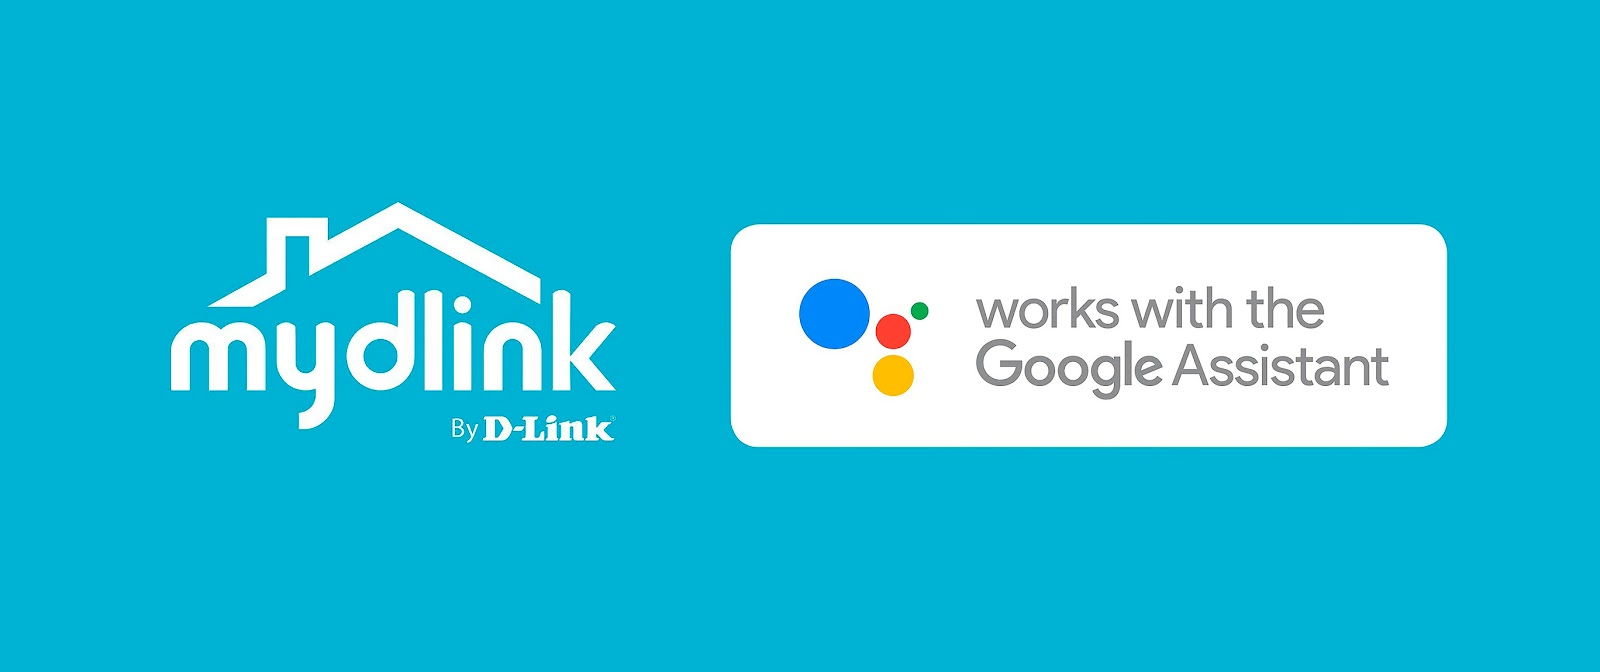 D-Link and the Google Assistant Logo